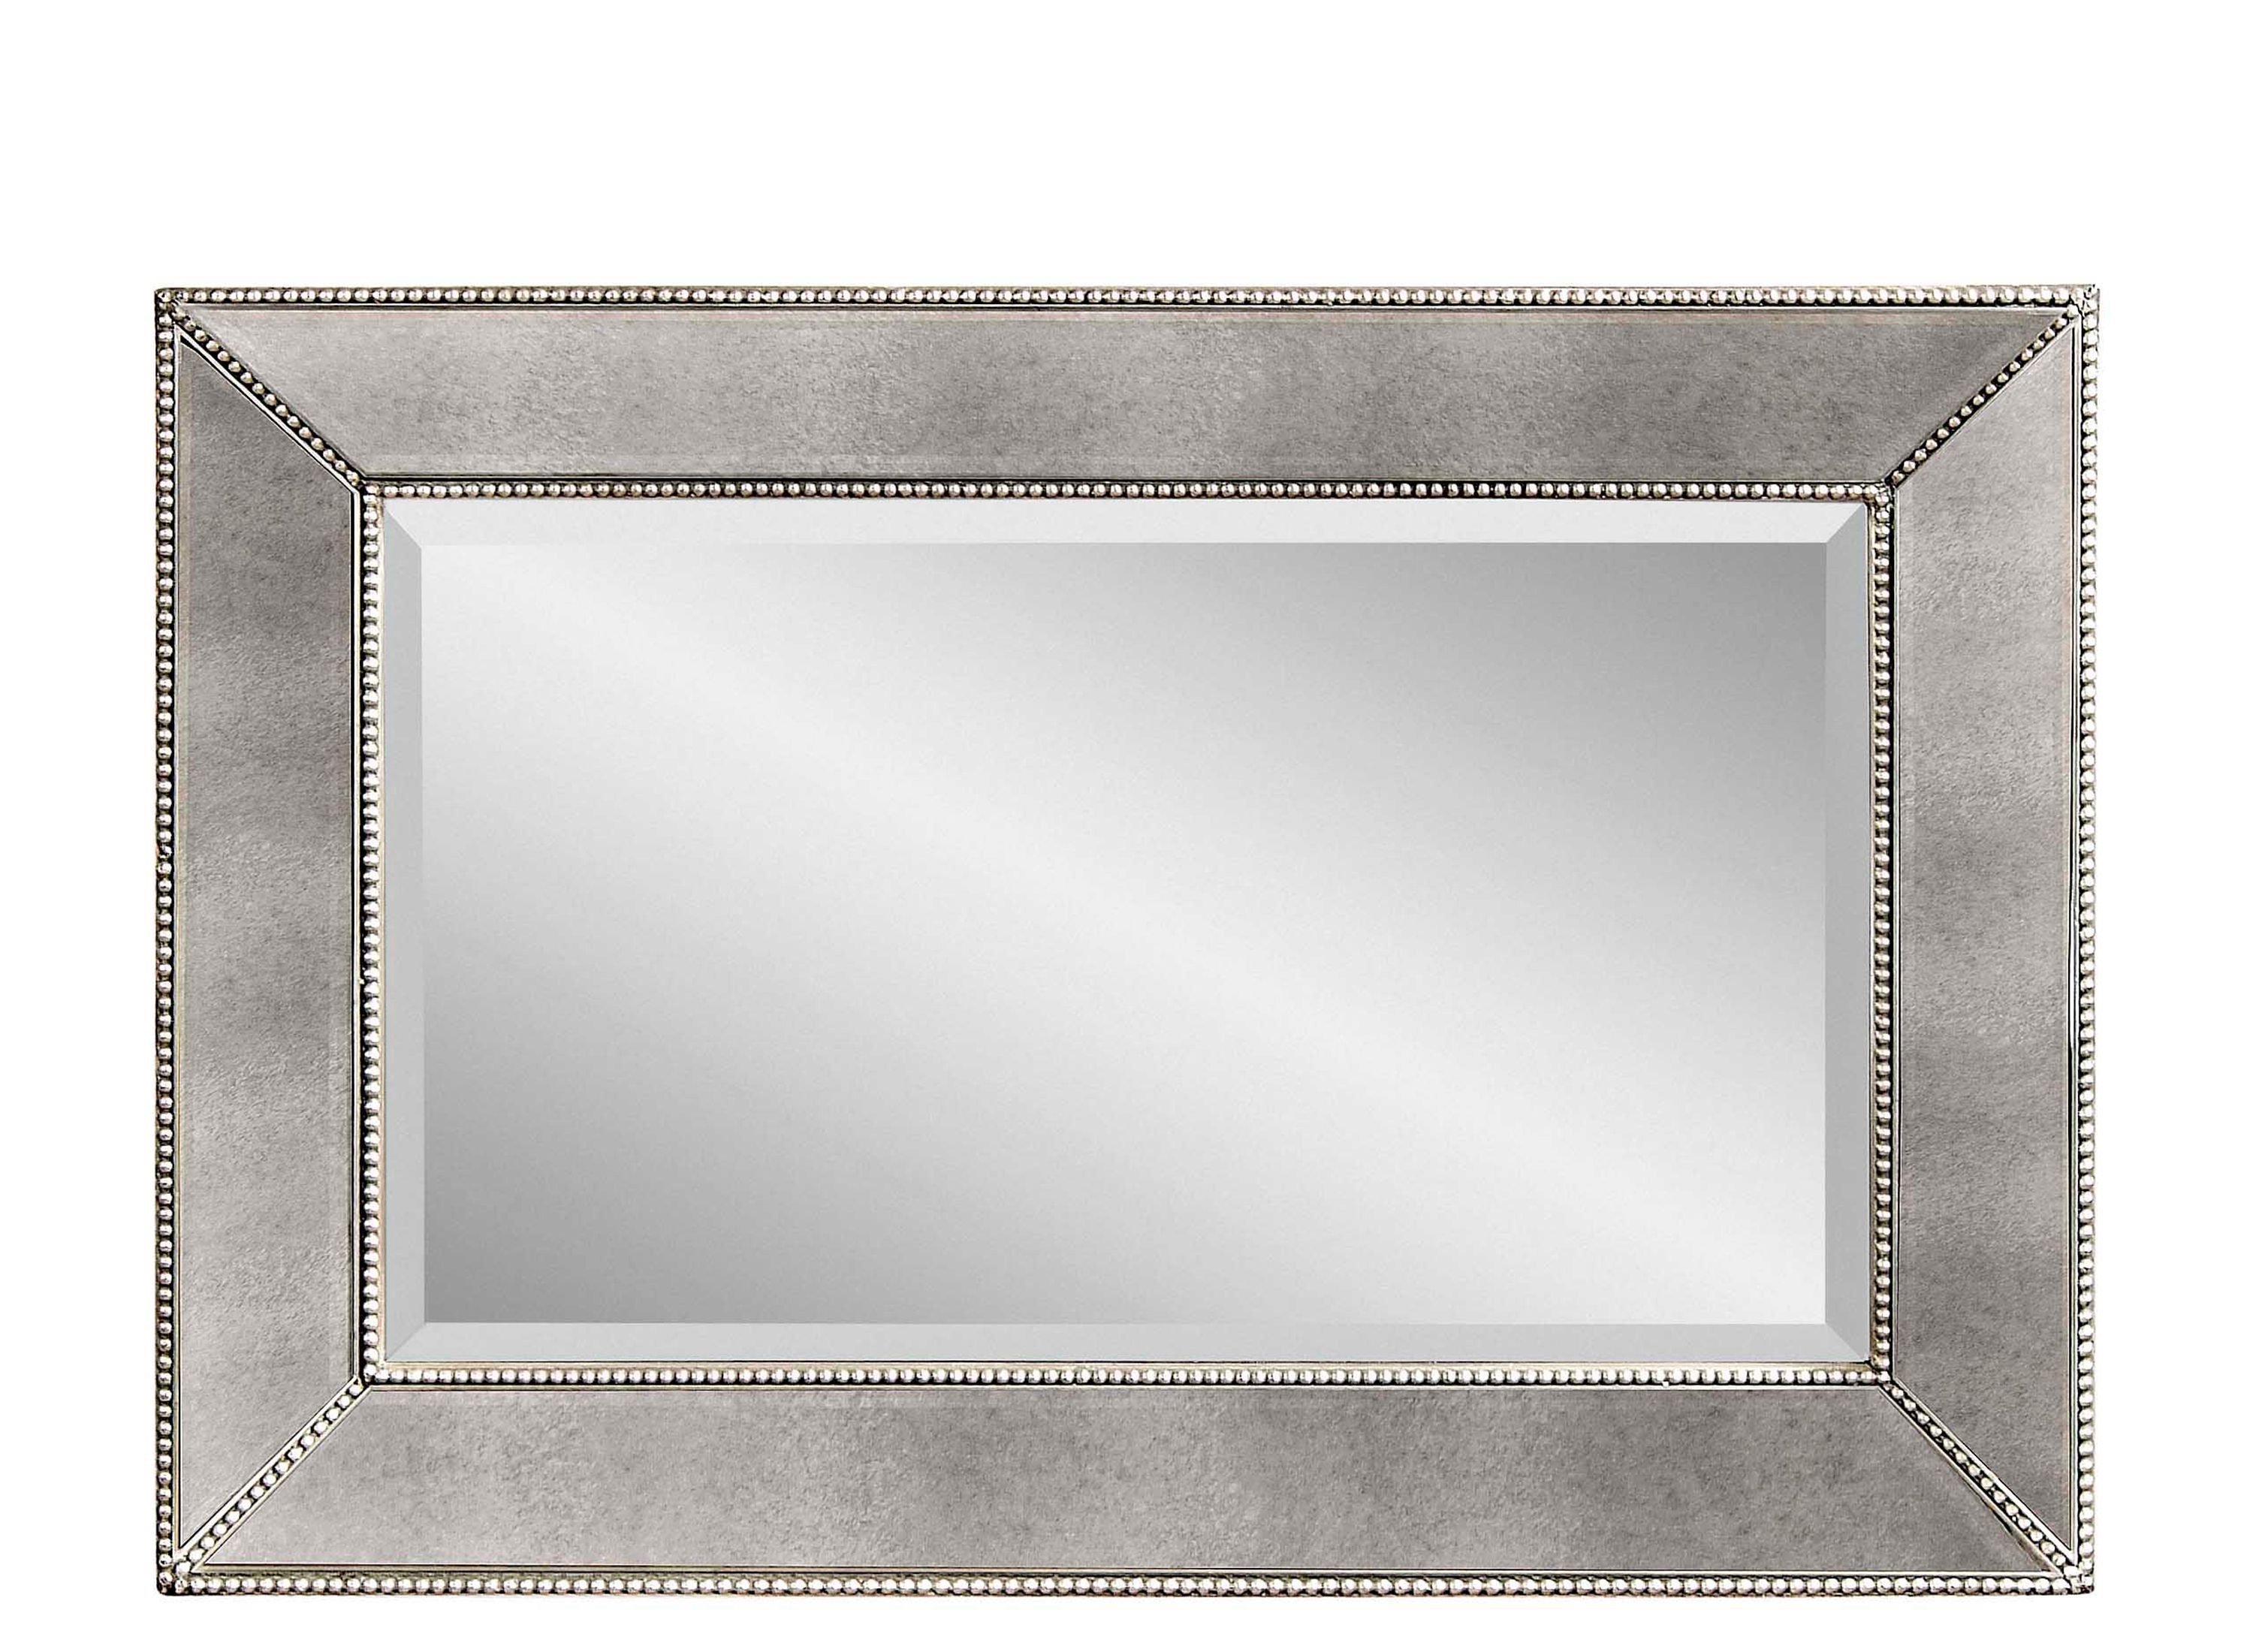 Beaded Wall Mirror | With An Antiqued Silver Finish And With Regard To Beaded Accent Wall Mirrors (View 10 of 20)